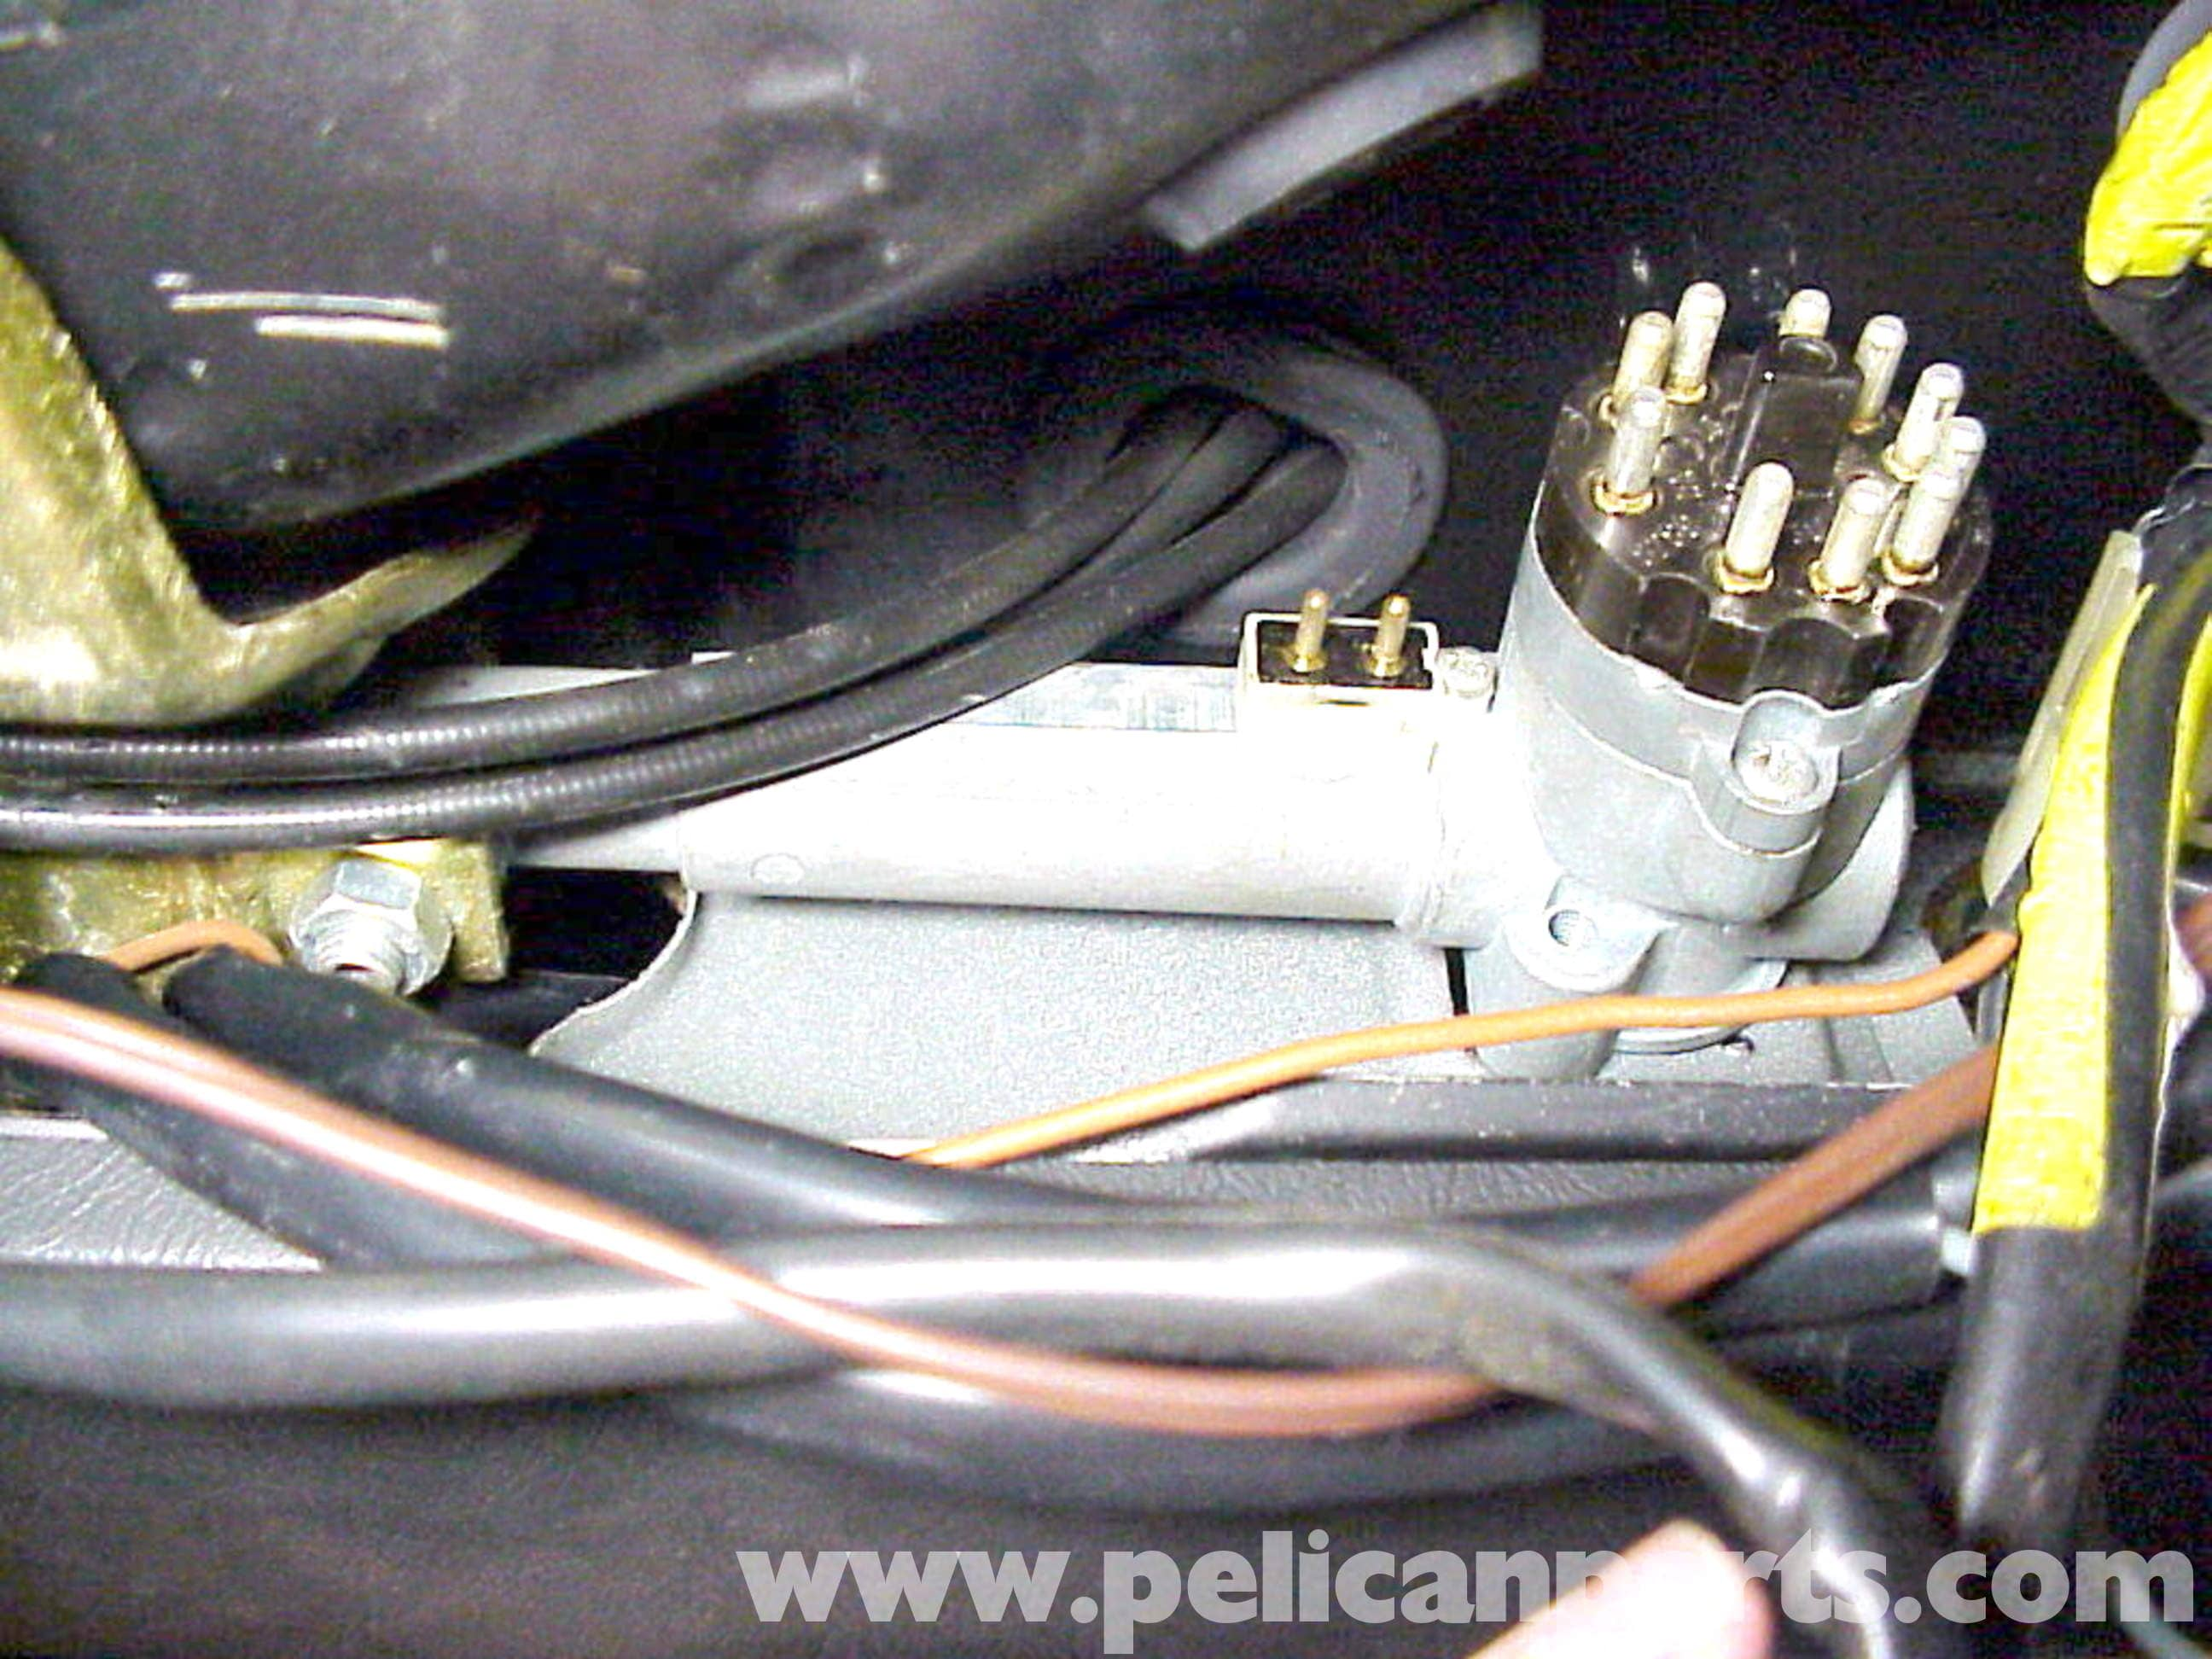 Pic2 porsche 911 ignition switch replacement 911 (1965 89) 930 1975 porsche 911 wiring diagram at creativeand.co